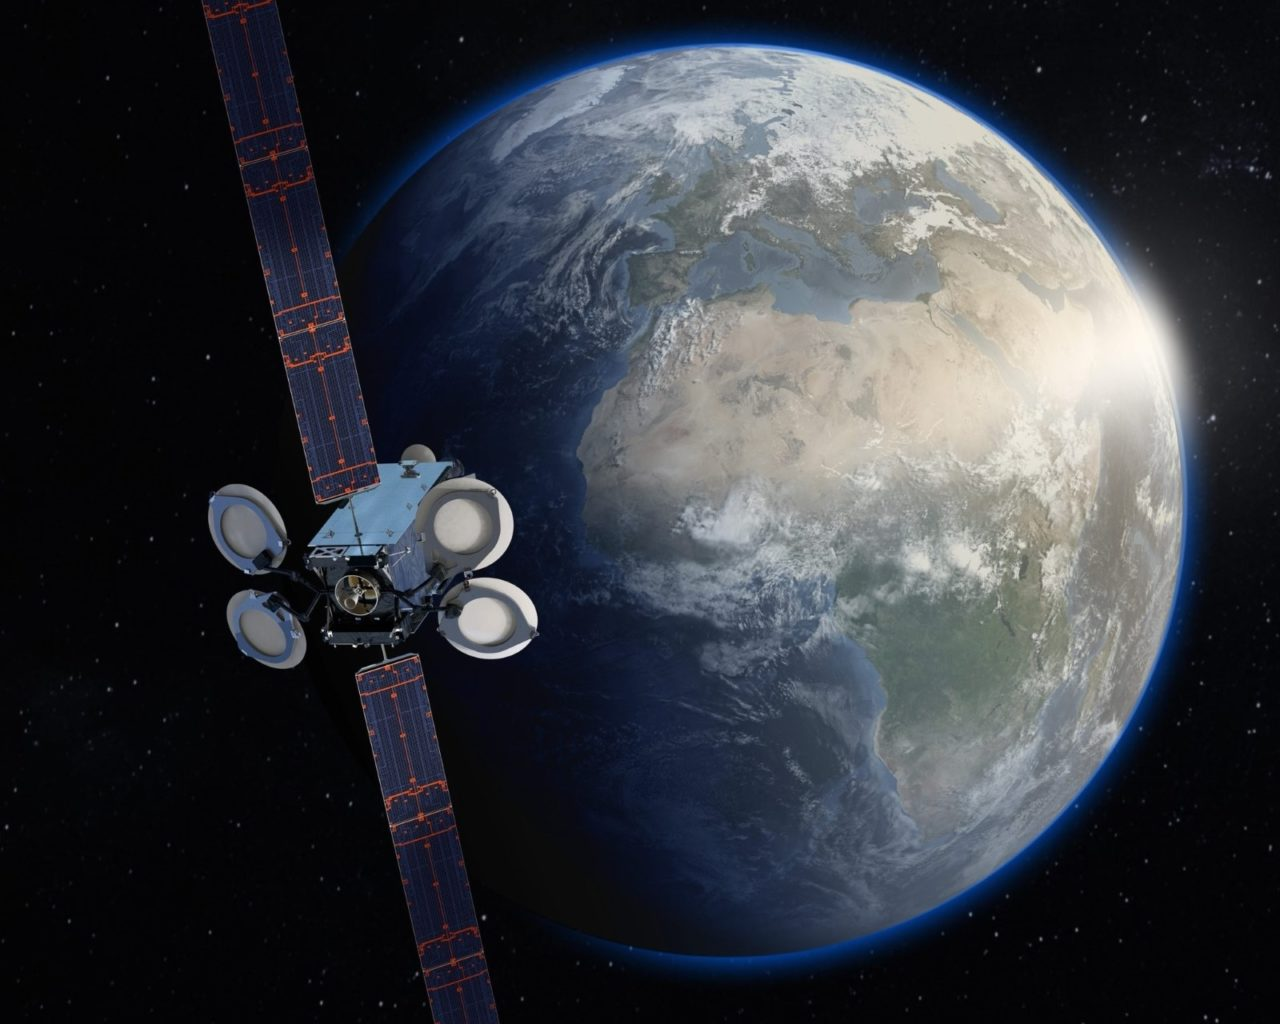 Artist's rendition of the Amos-17 satellite based on the BSS-702MP bus. Image Credit: Boeing